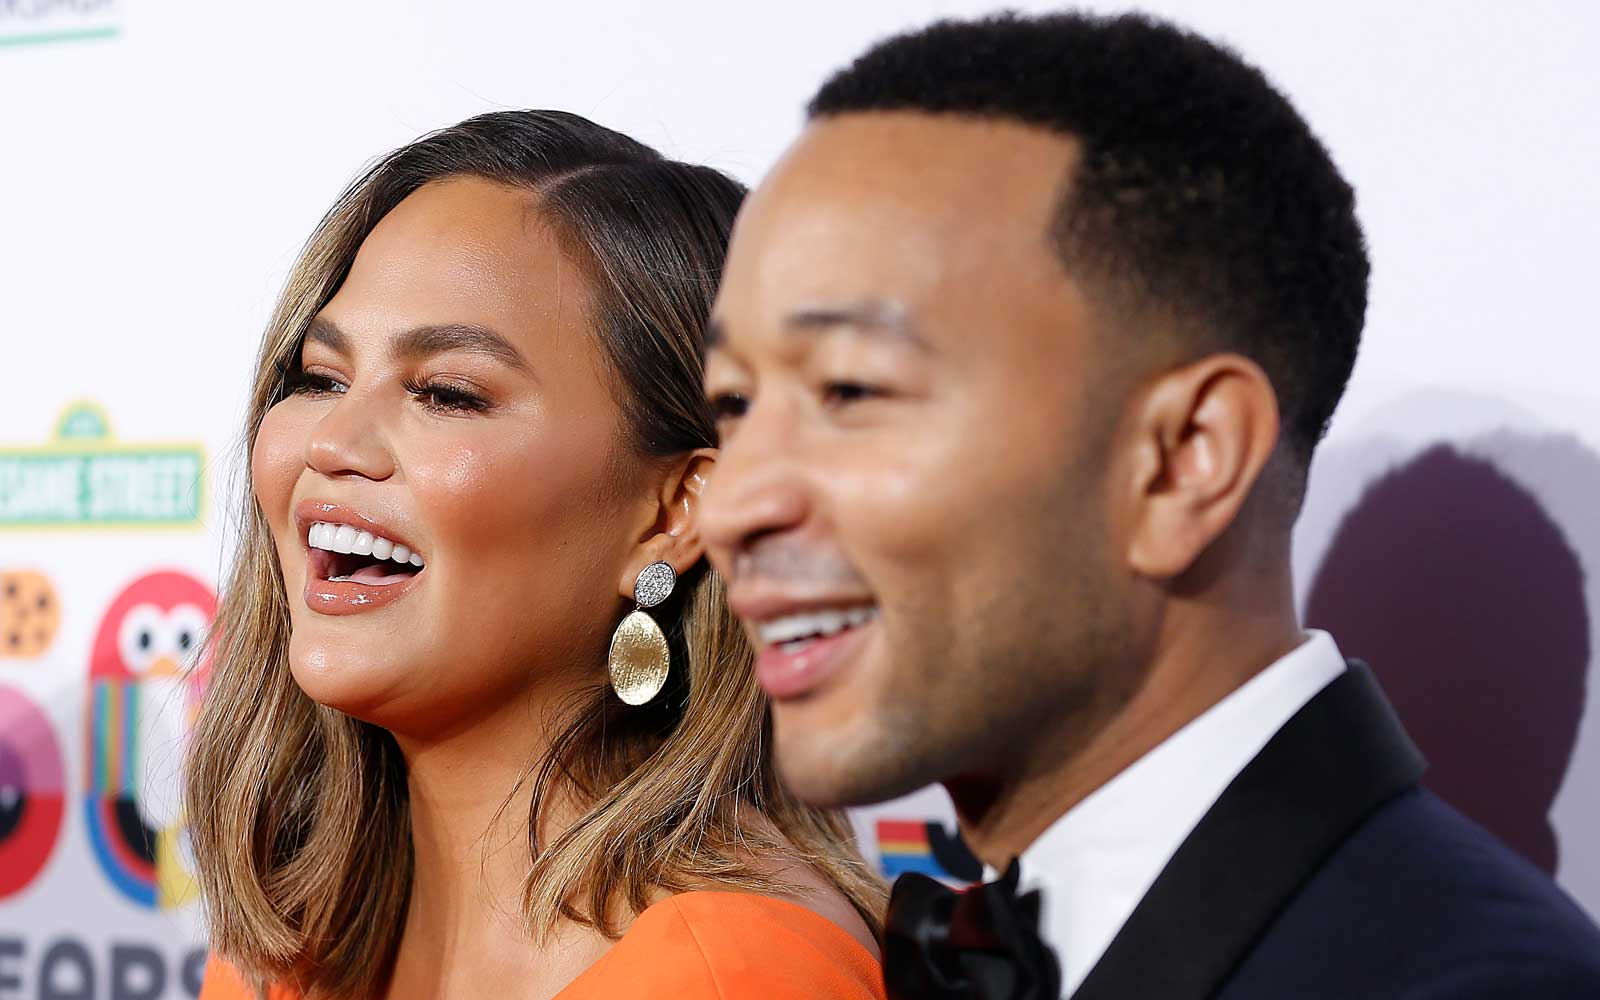 Chrissy Teigen and John Legend's Dream RV Trip Turned Into a Hilarious Disaster